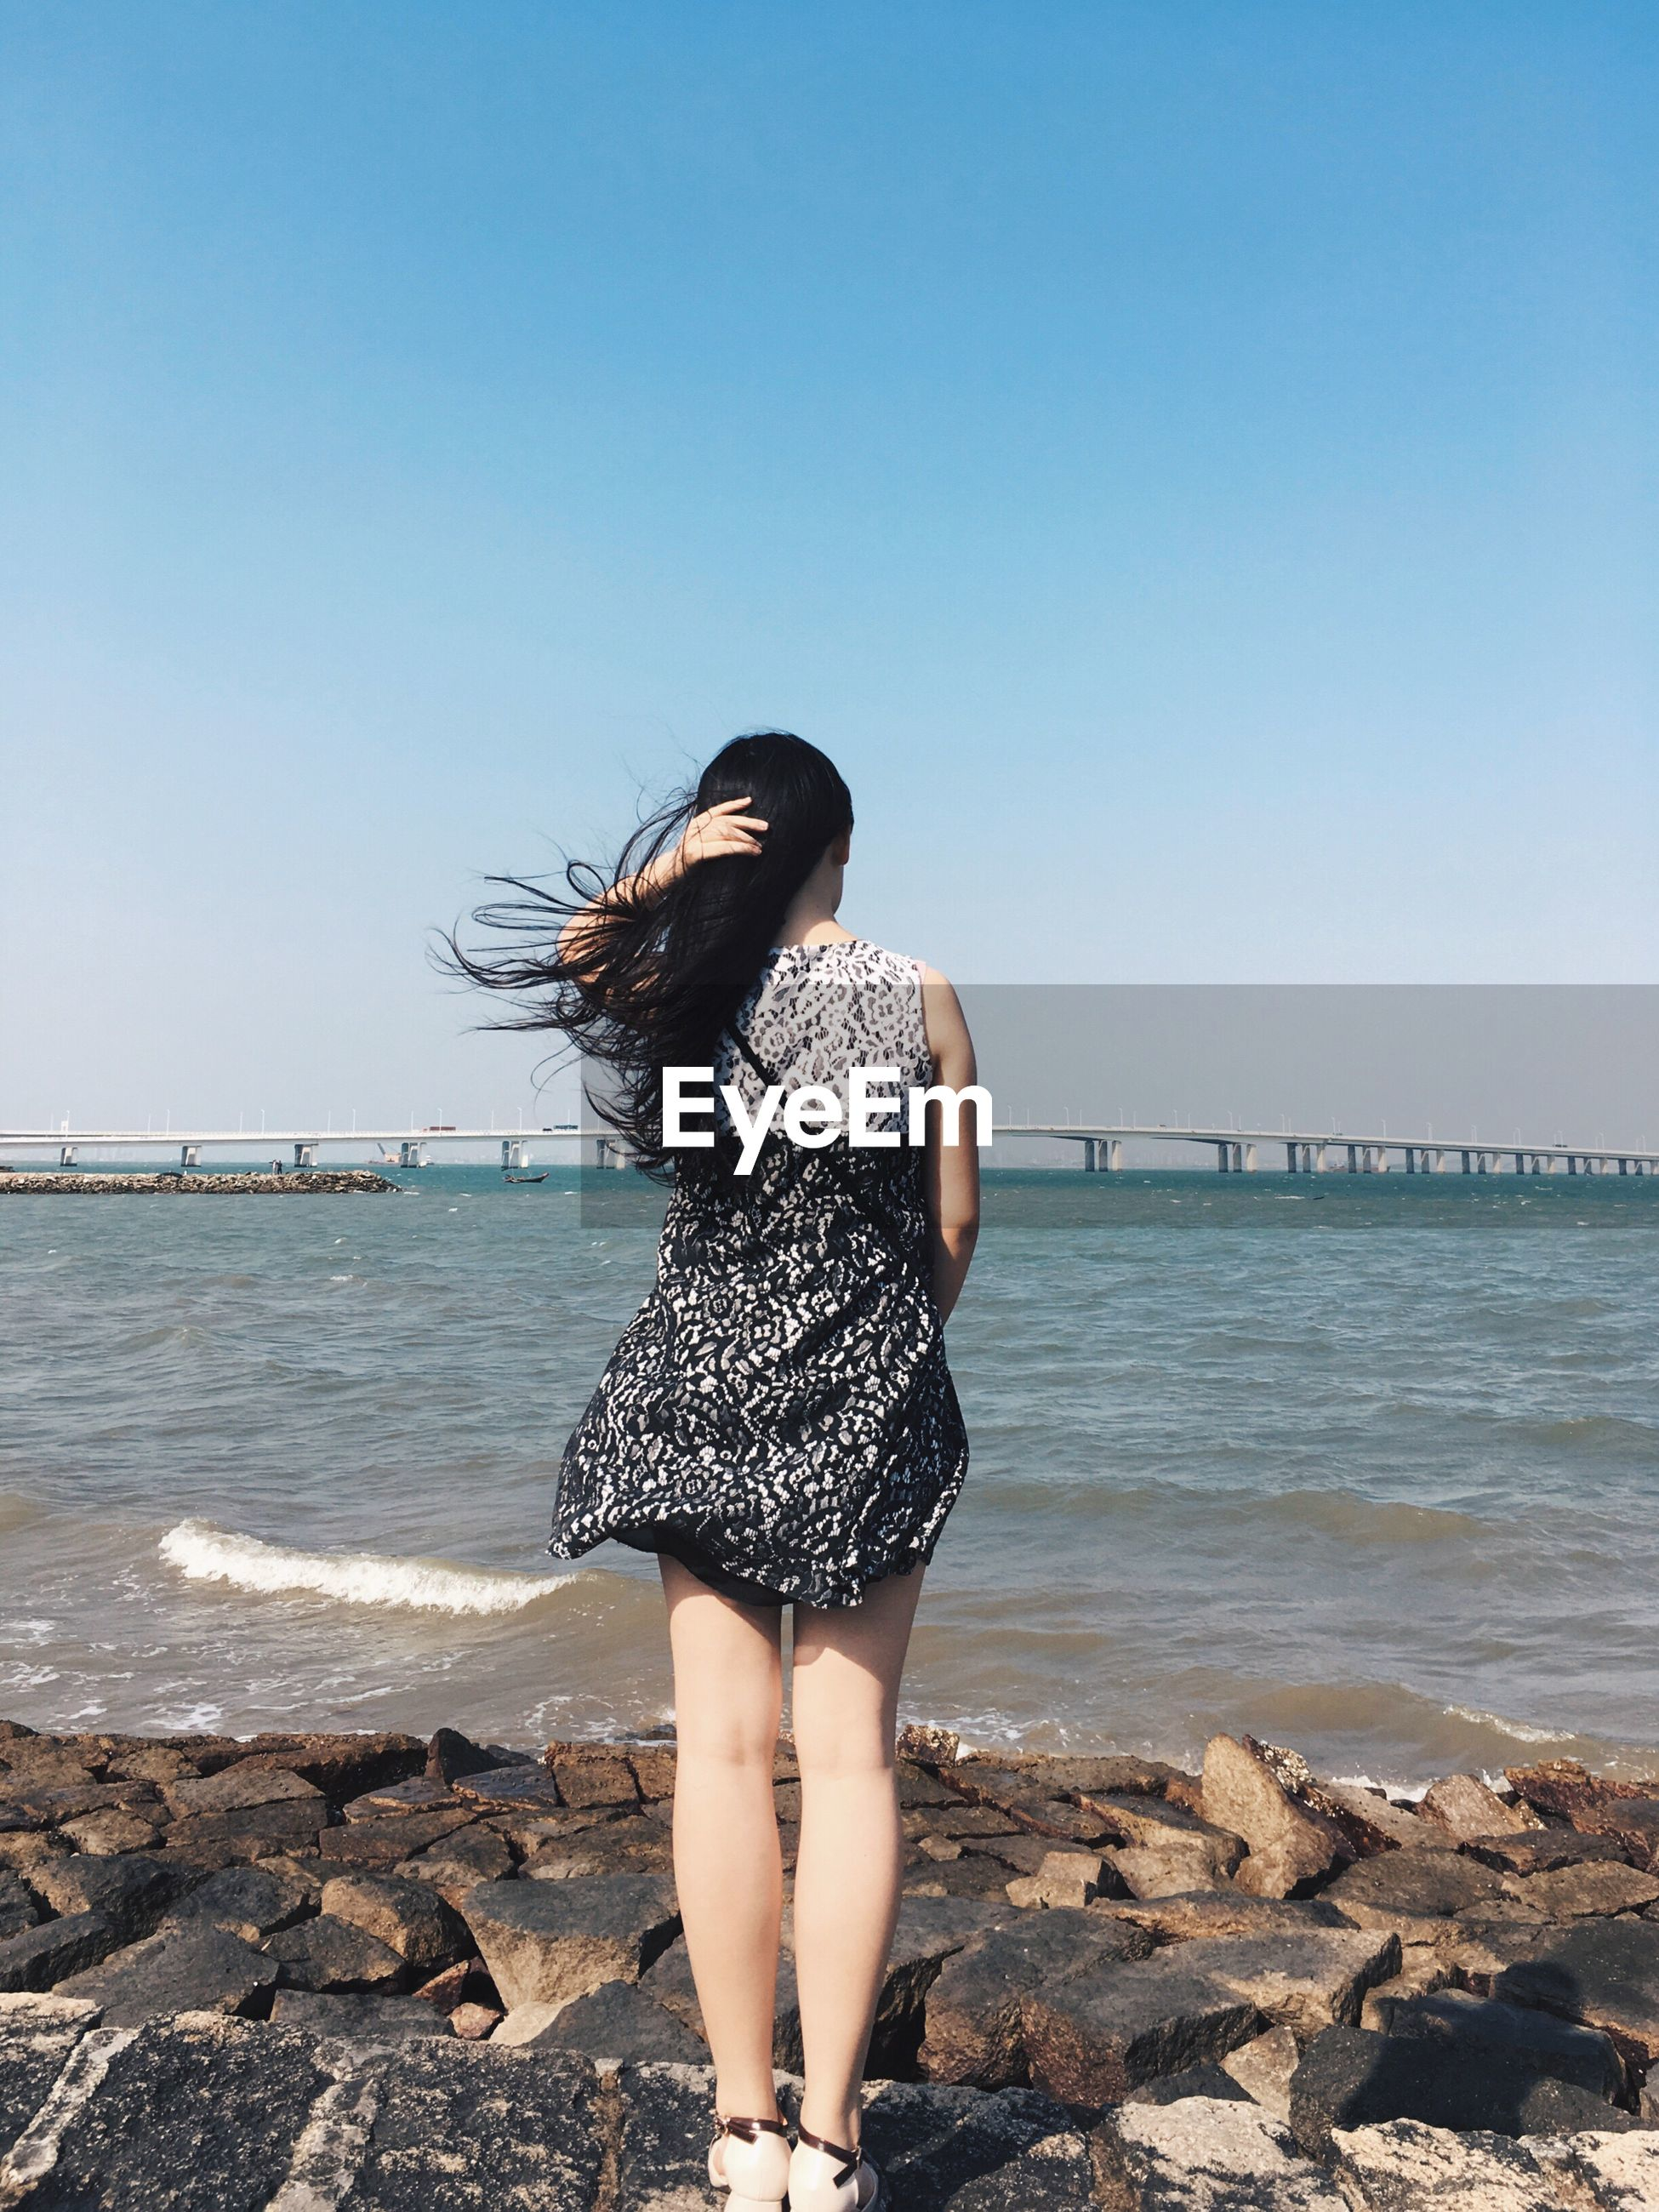 sea, water, clear sky, one person, leisure activity, real people, nature, horizon over water, lifestyles, outdoors, rock - object, standing, young women, long hair, day, young adult, beauty in nature, beach, full length, scenics, sky, beautiful woman